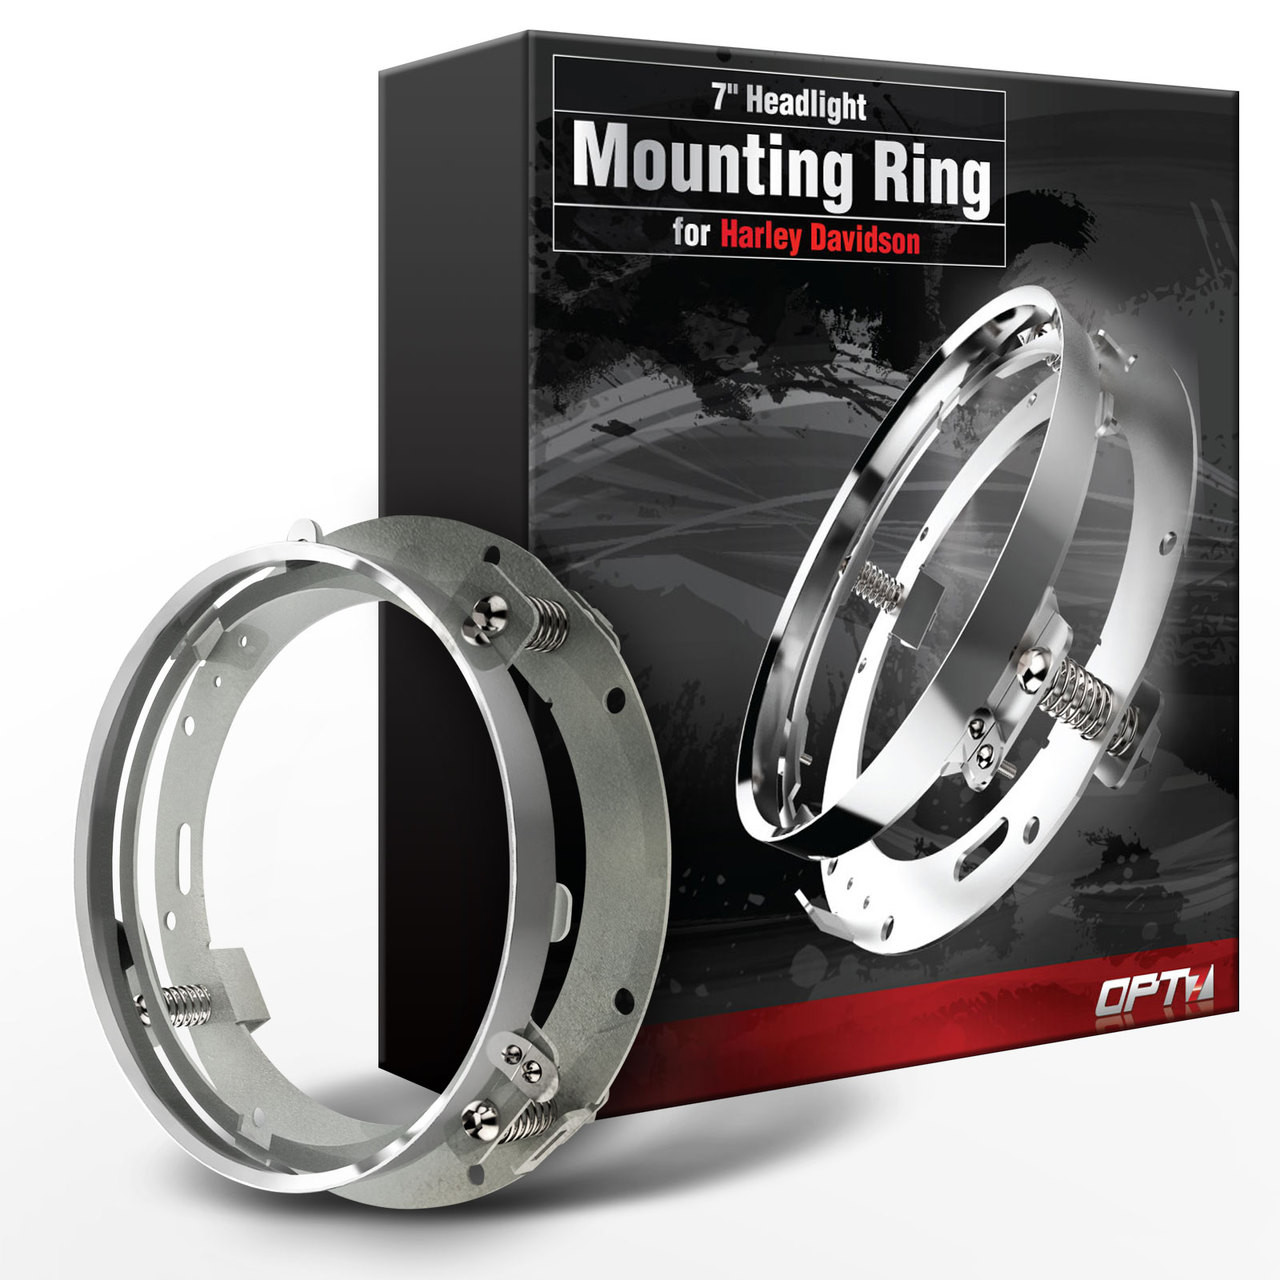 small resolution of 7 inch led daymaker headlight mounting ring bracket for harley davidsons opt7